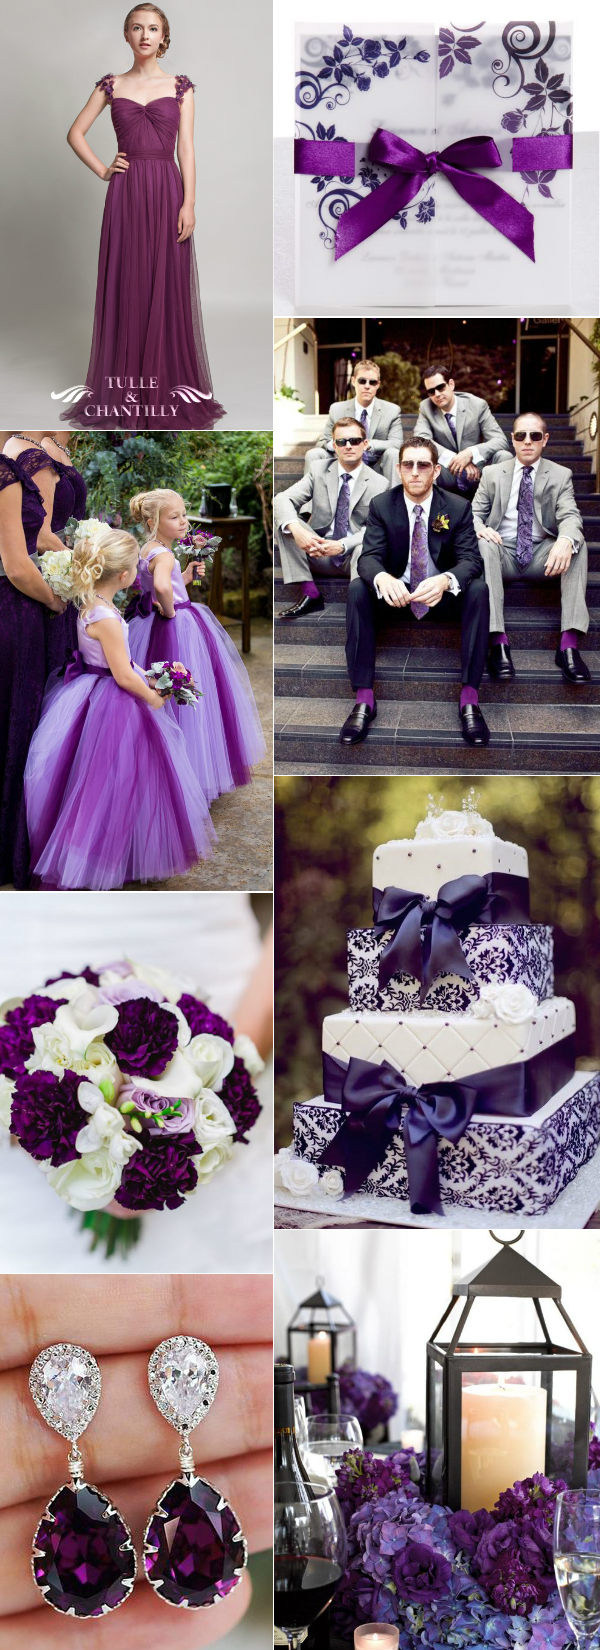 elegant-plum-purple-wedding-ideas